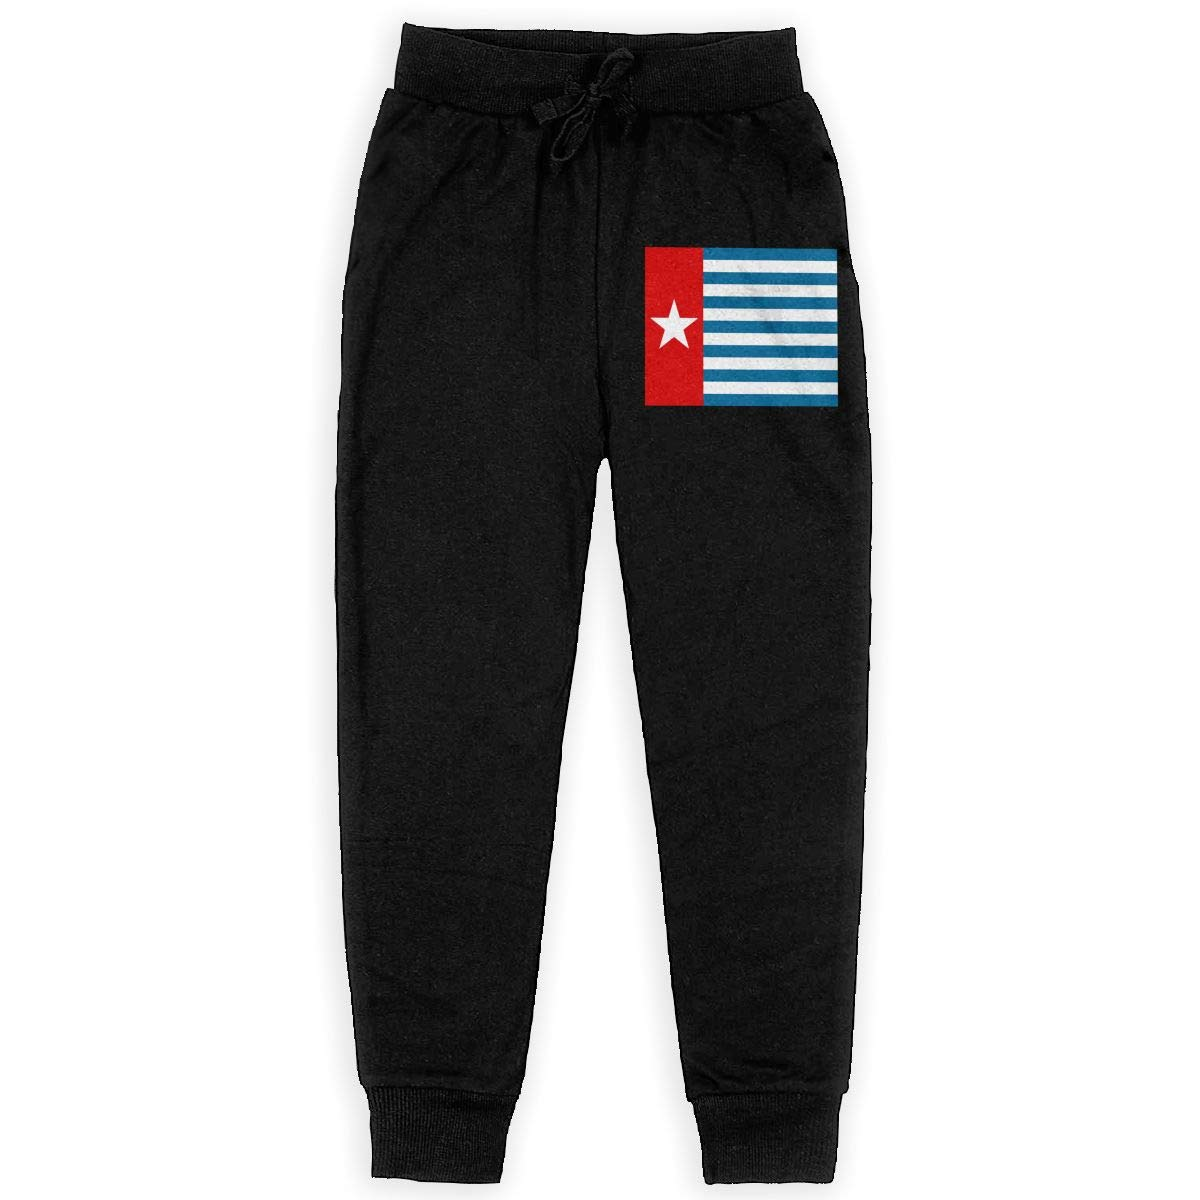 Youth Sweatpants West Papua National Flag Teen's Jogger Pants Kids' Leggings Black